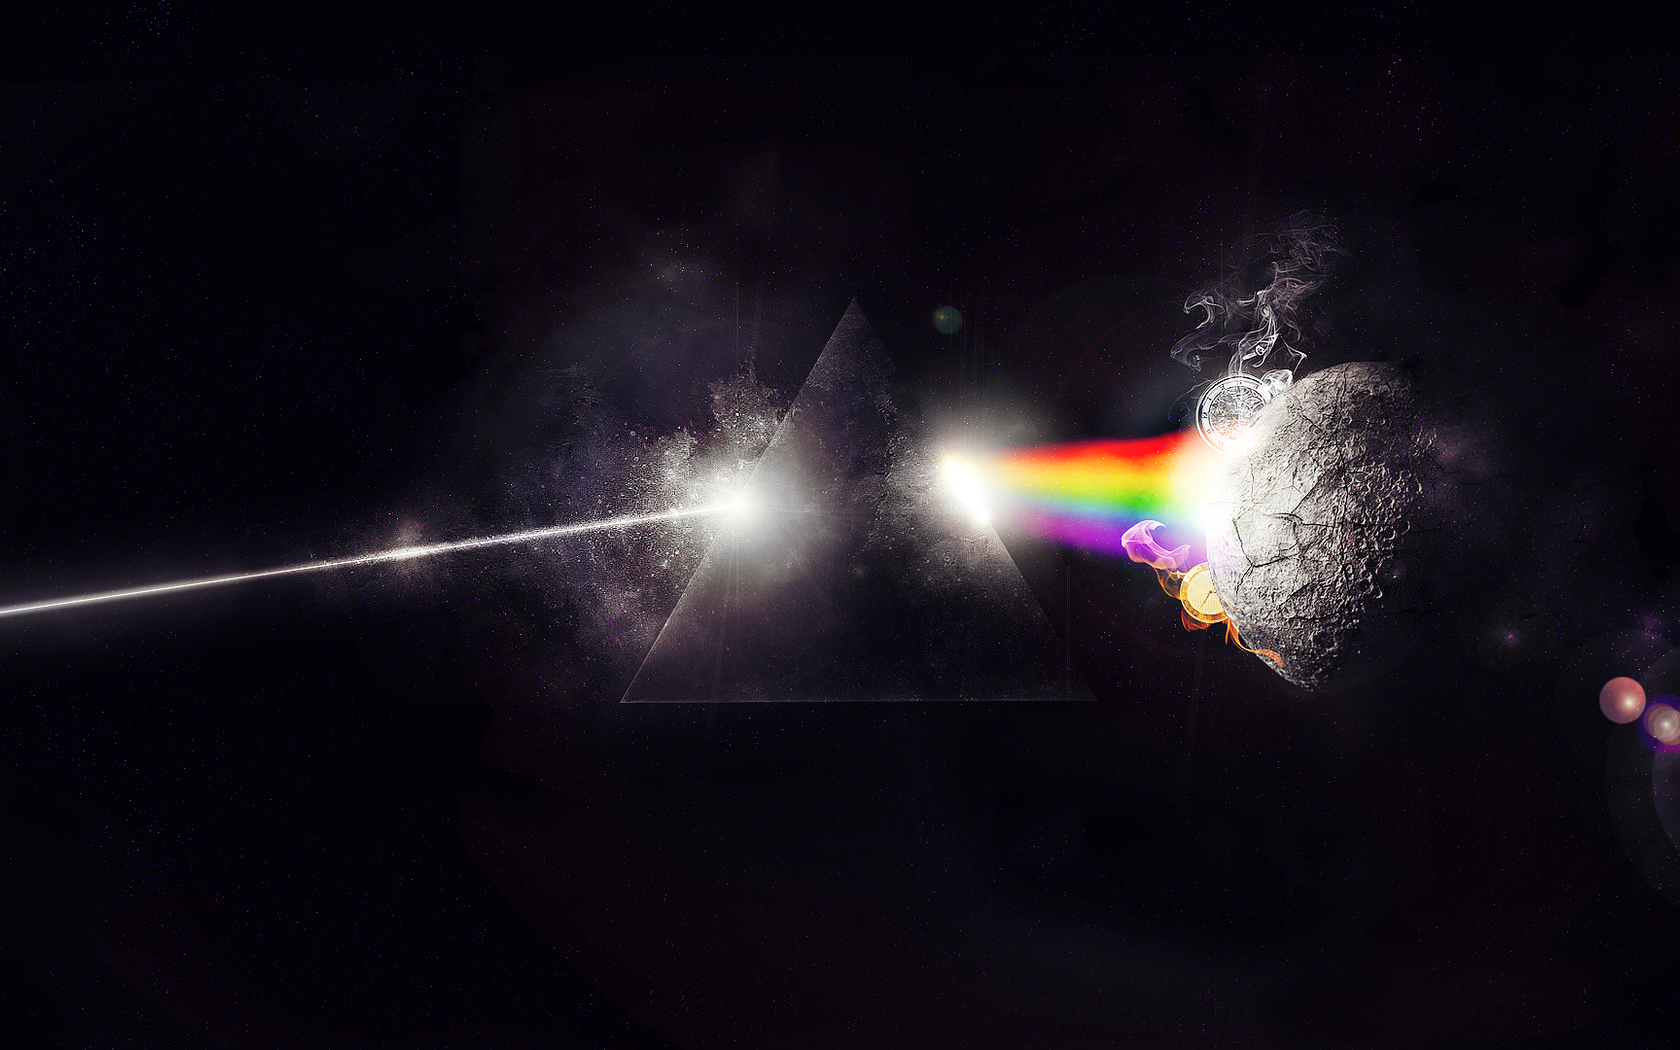 Download Pink Floyd   The Dark Side of the Moon wallpaper 1680x1050